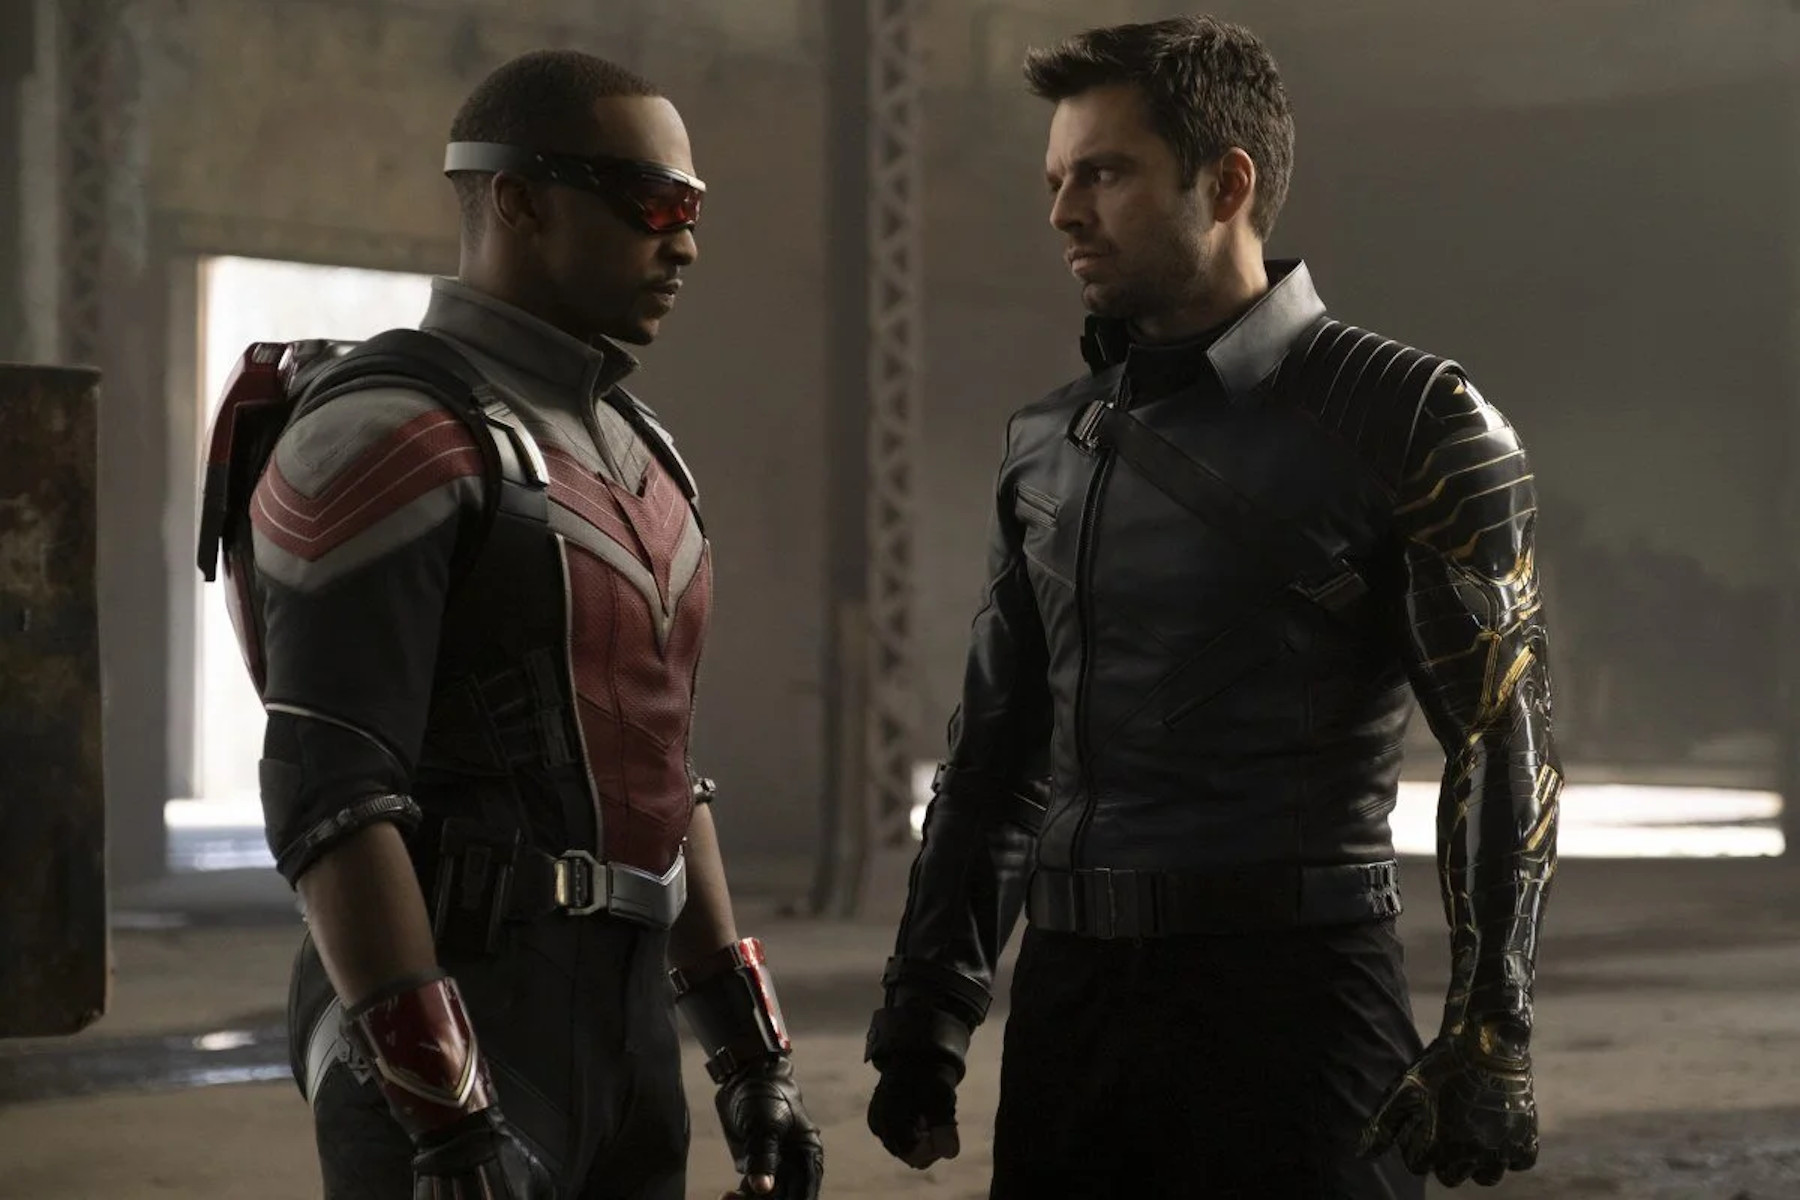 Marvel Reveals New Stills From The Falcon and the Winter Soldier